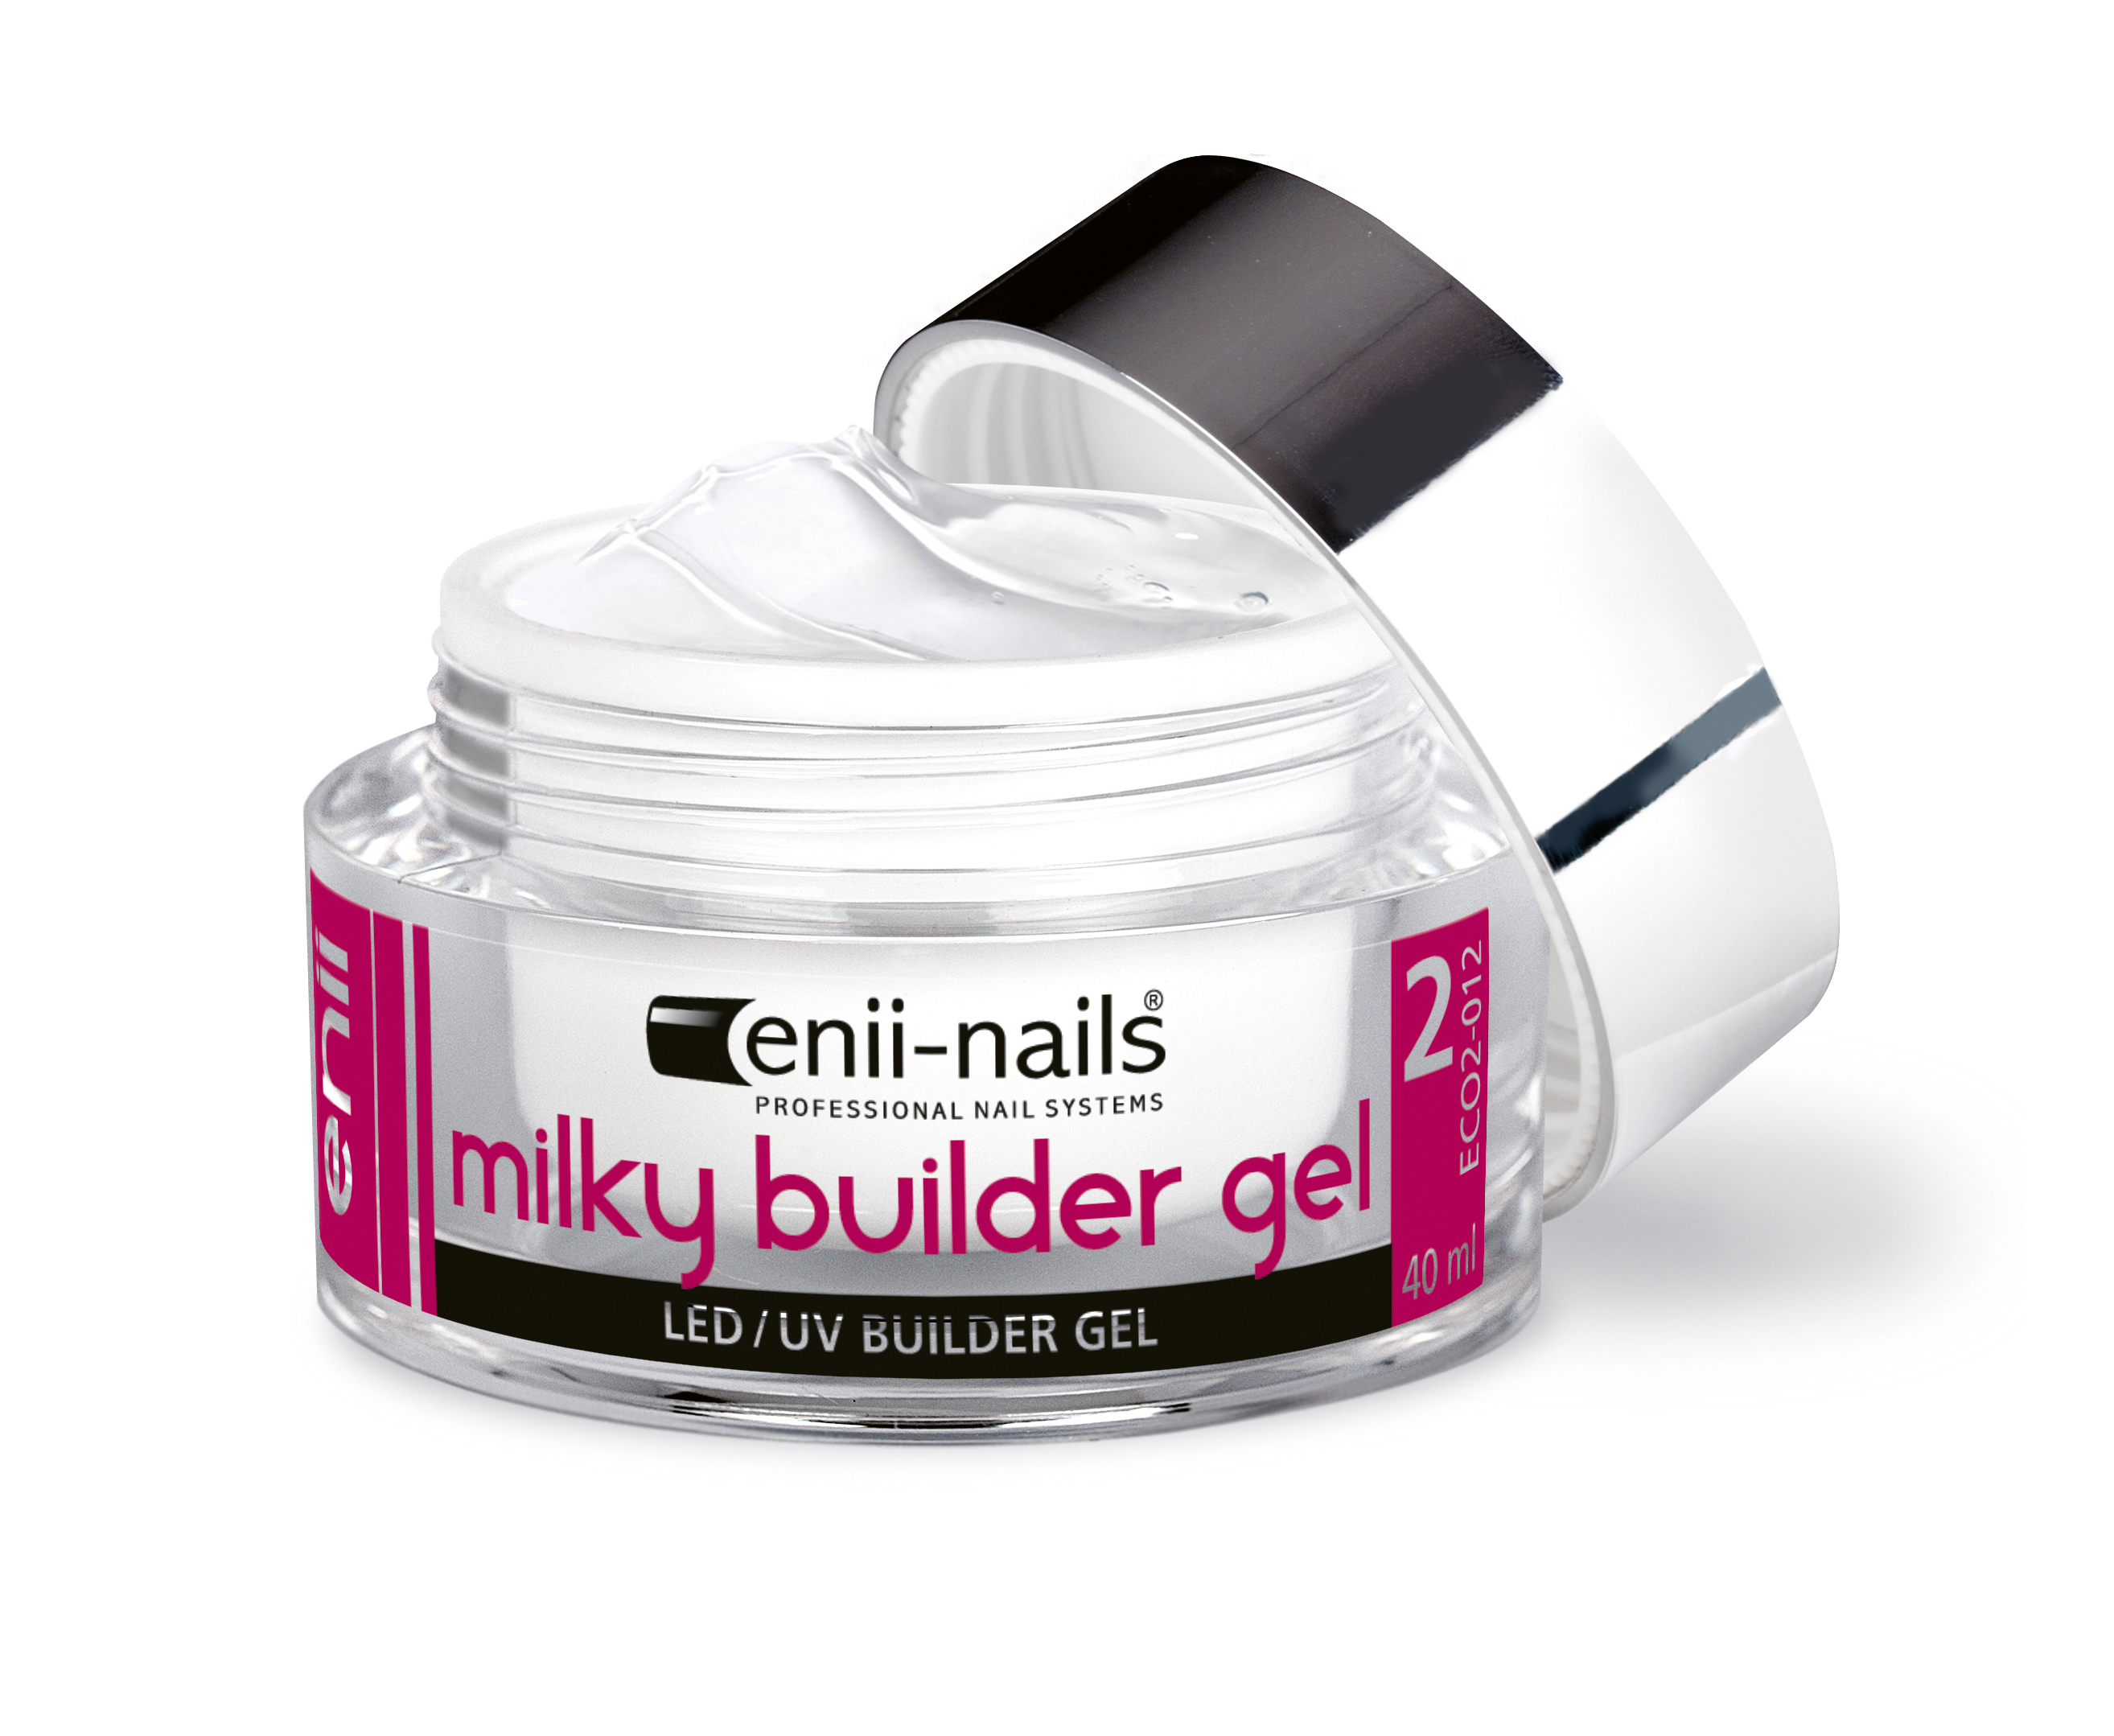 ENII-NAILS UV gel modelovací french mléčně bílý 40 ml